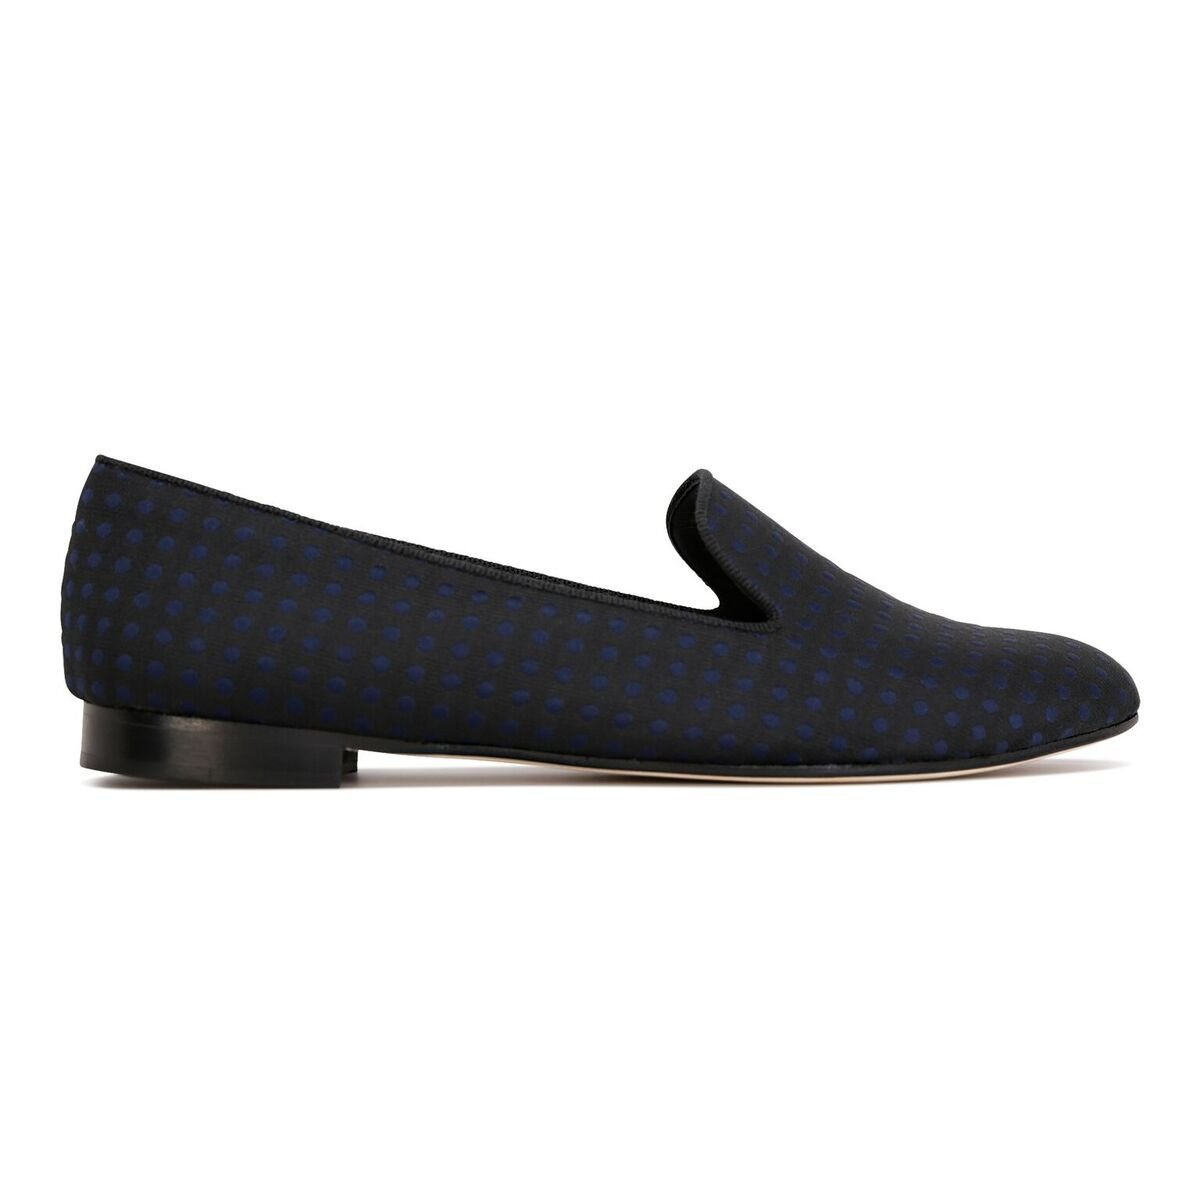 RAVENNA - Textile Polka Dot Midnight, VIAJIYU - Women's Hand Made Sustainable Luxury Shoes. Made in Italy. Made to Order.